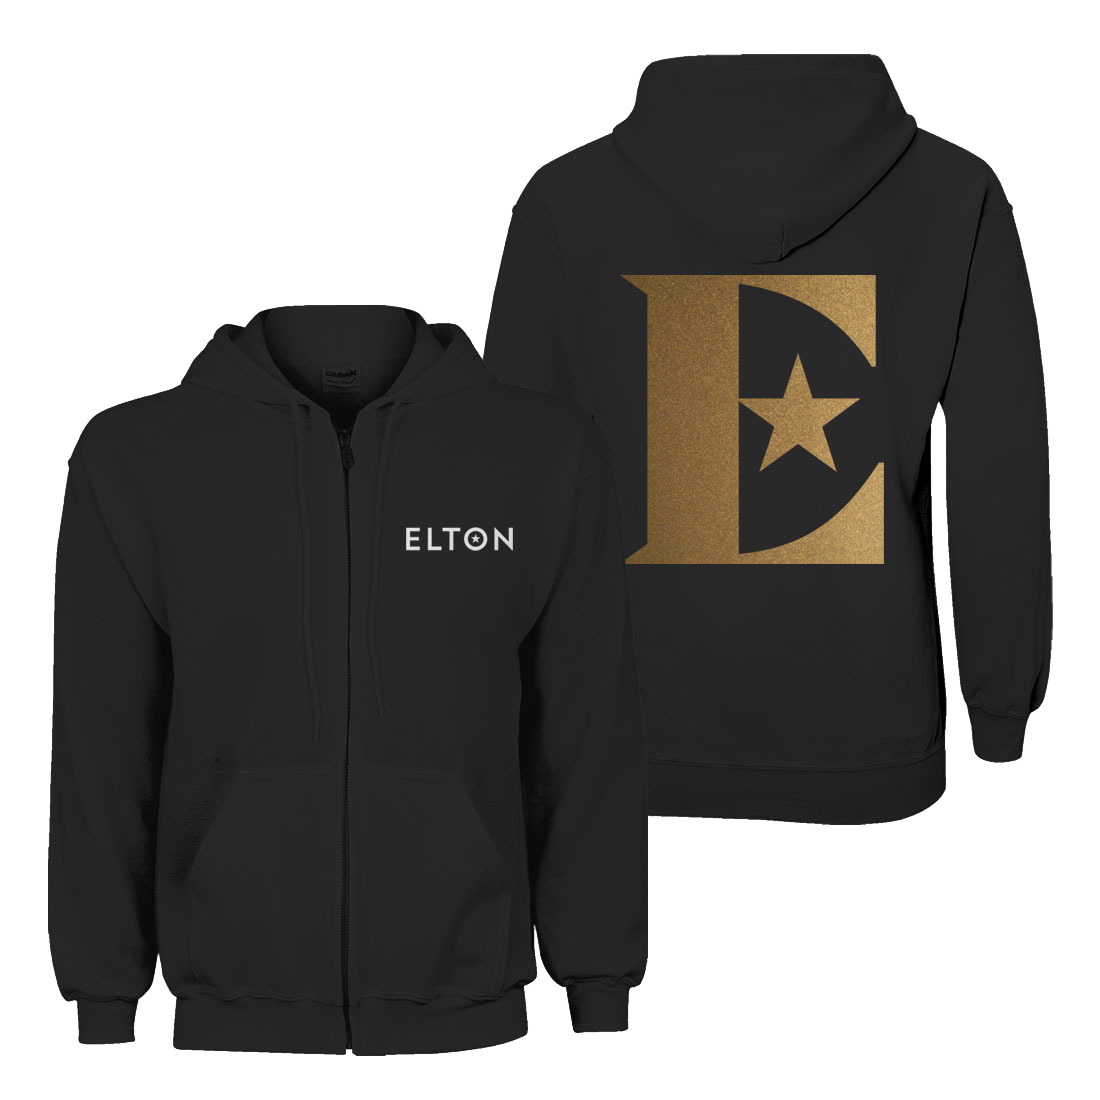 Elton John: Glittered Logo Zip-up Hoodie – Black